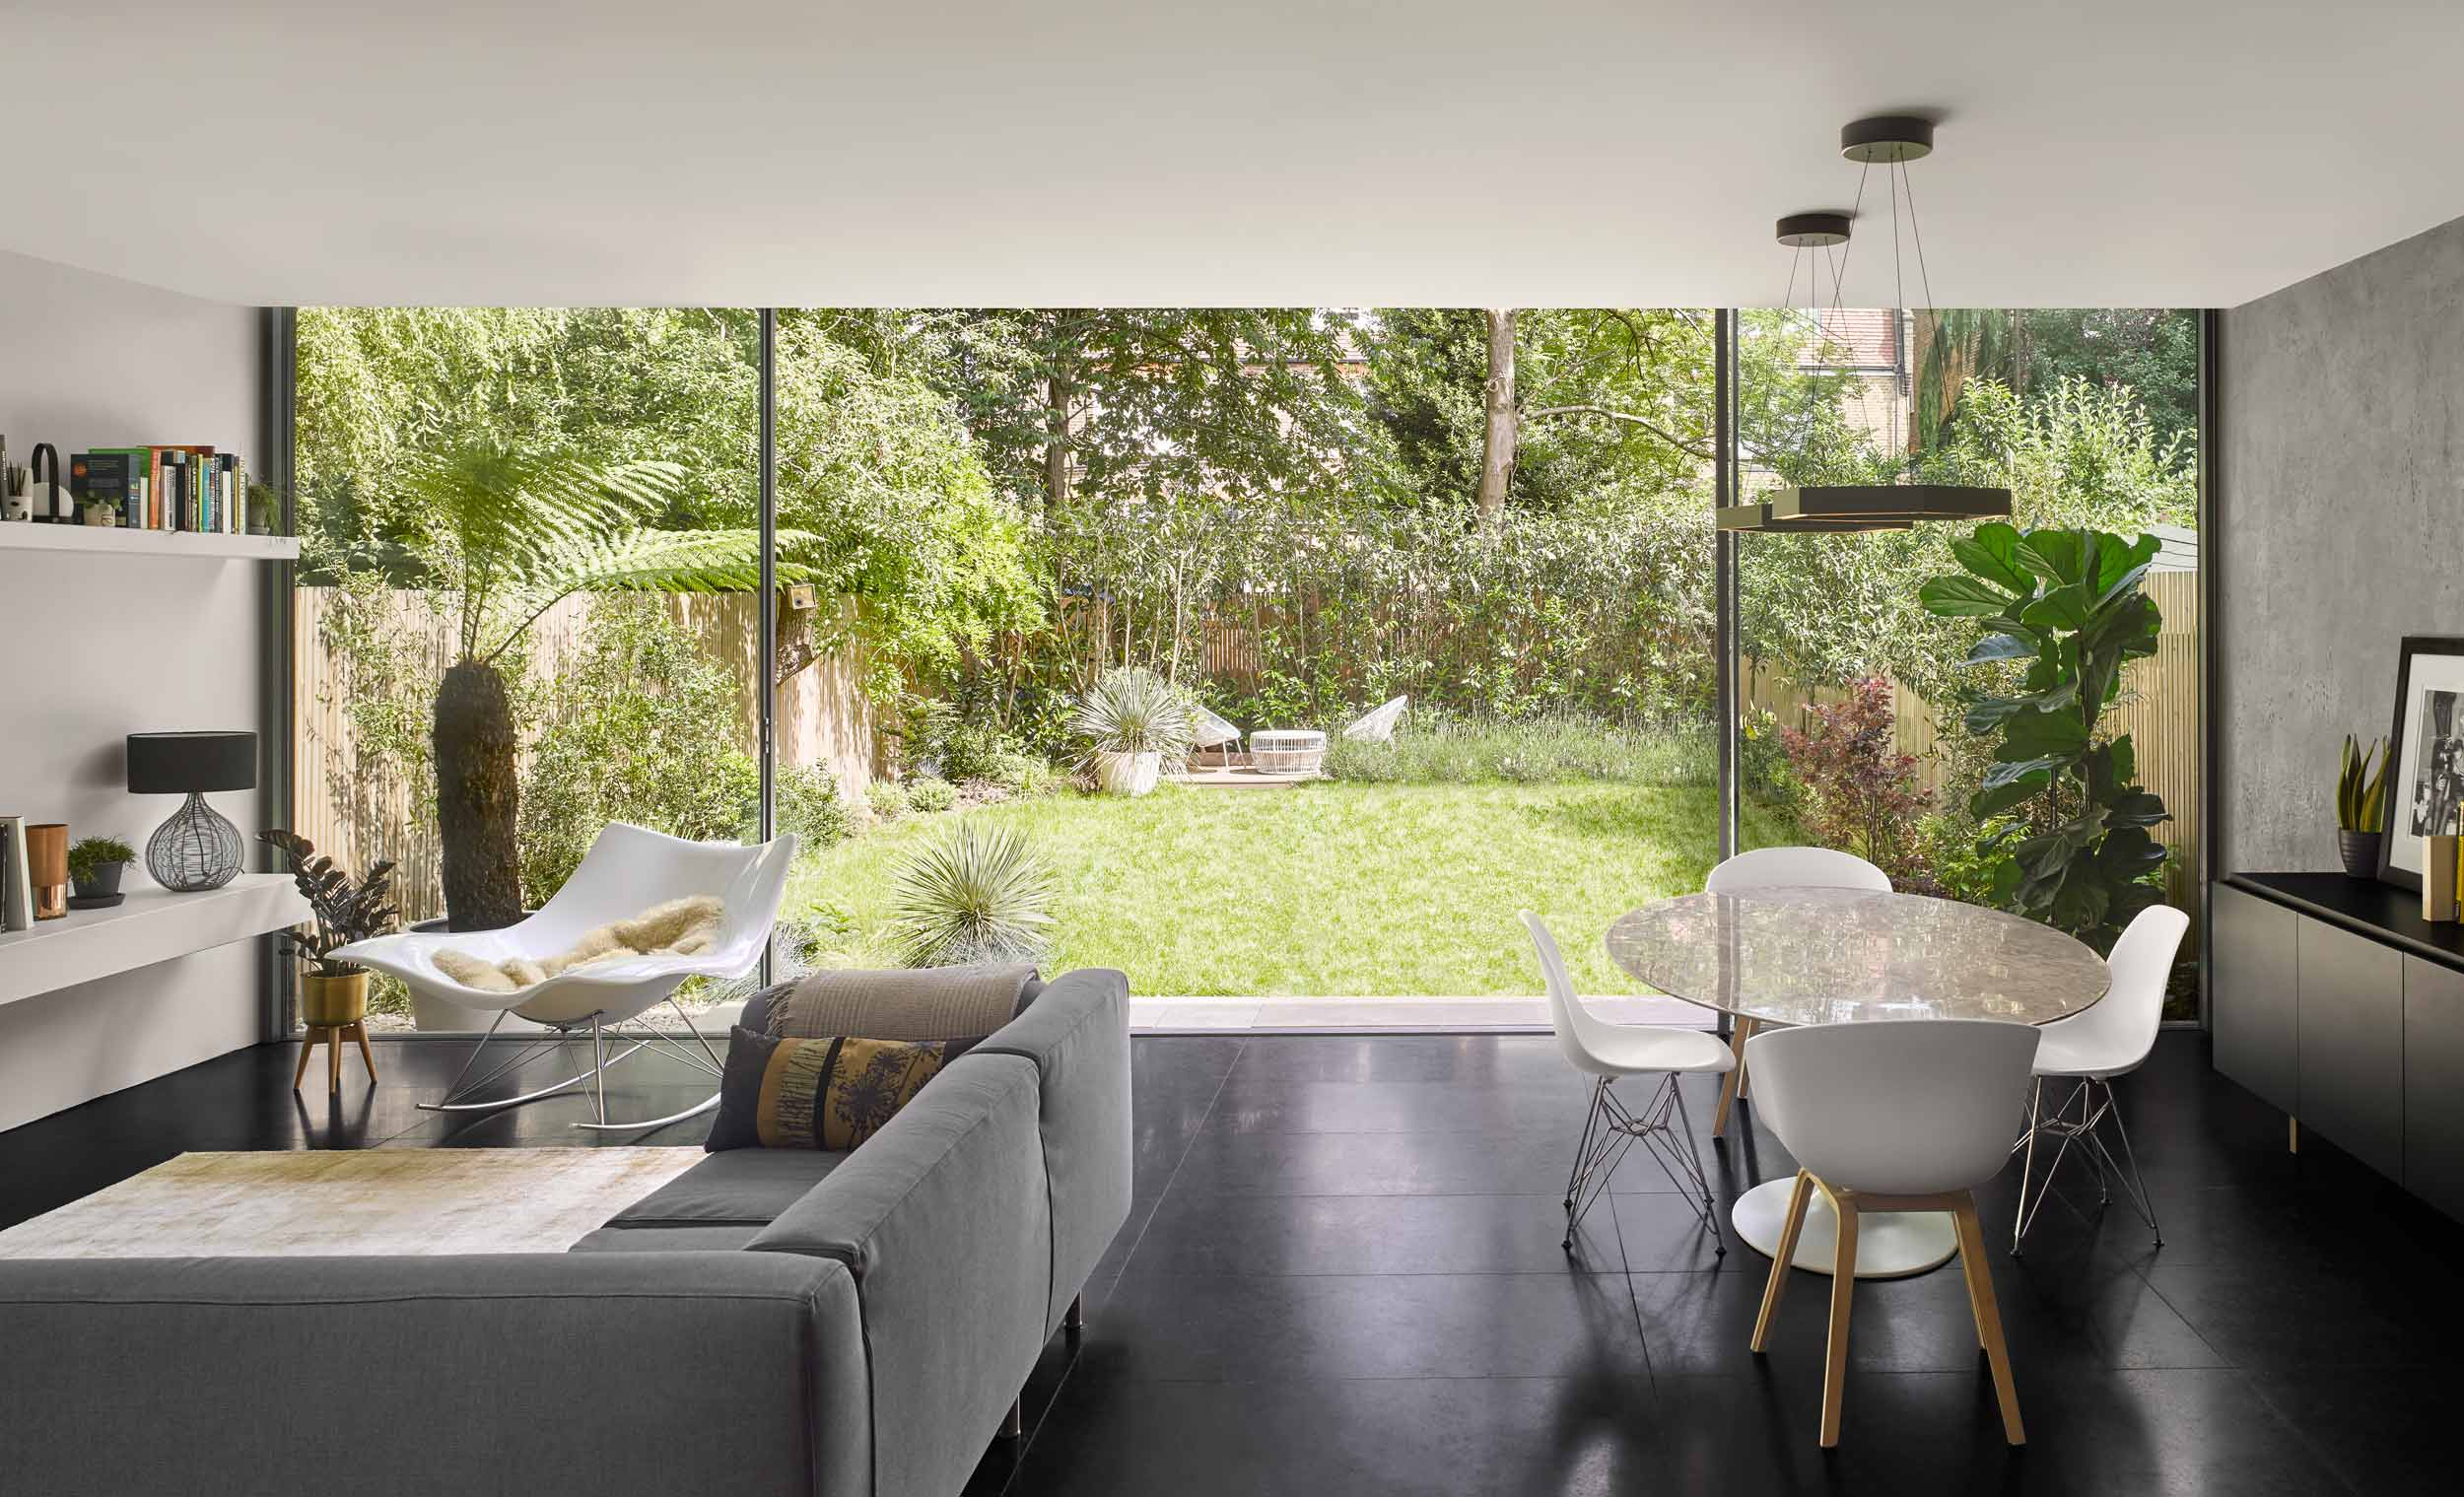 Dominic Mckenzie Architects Proposals Restore The Proportions And Sense Of